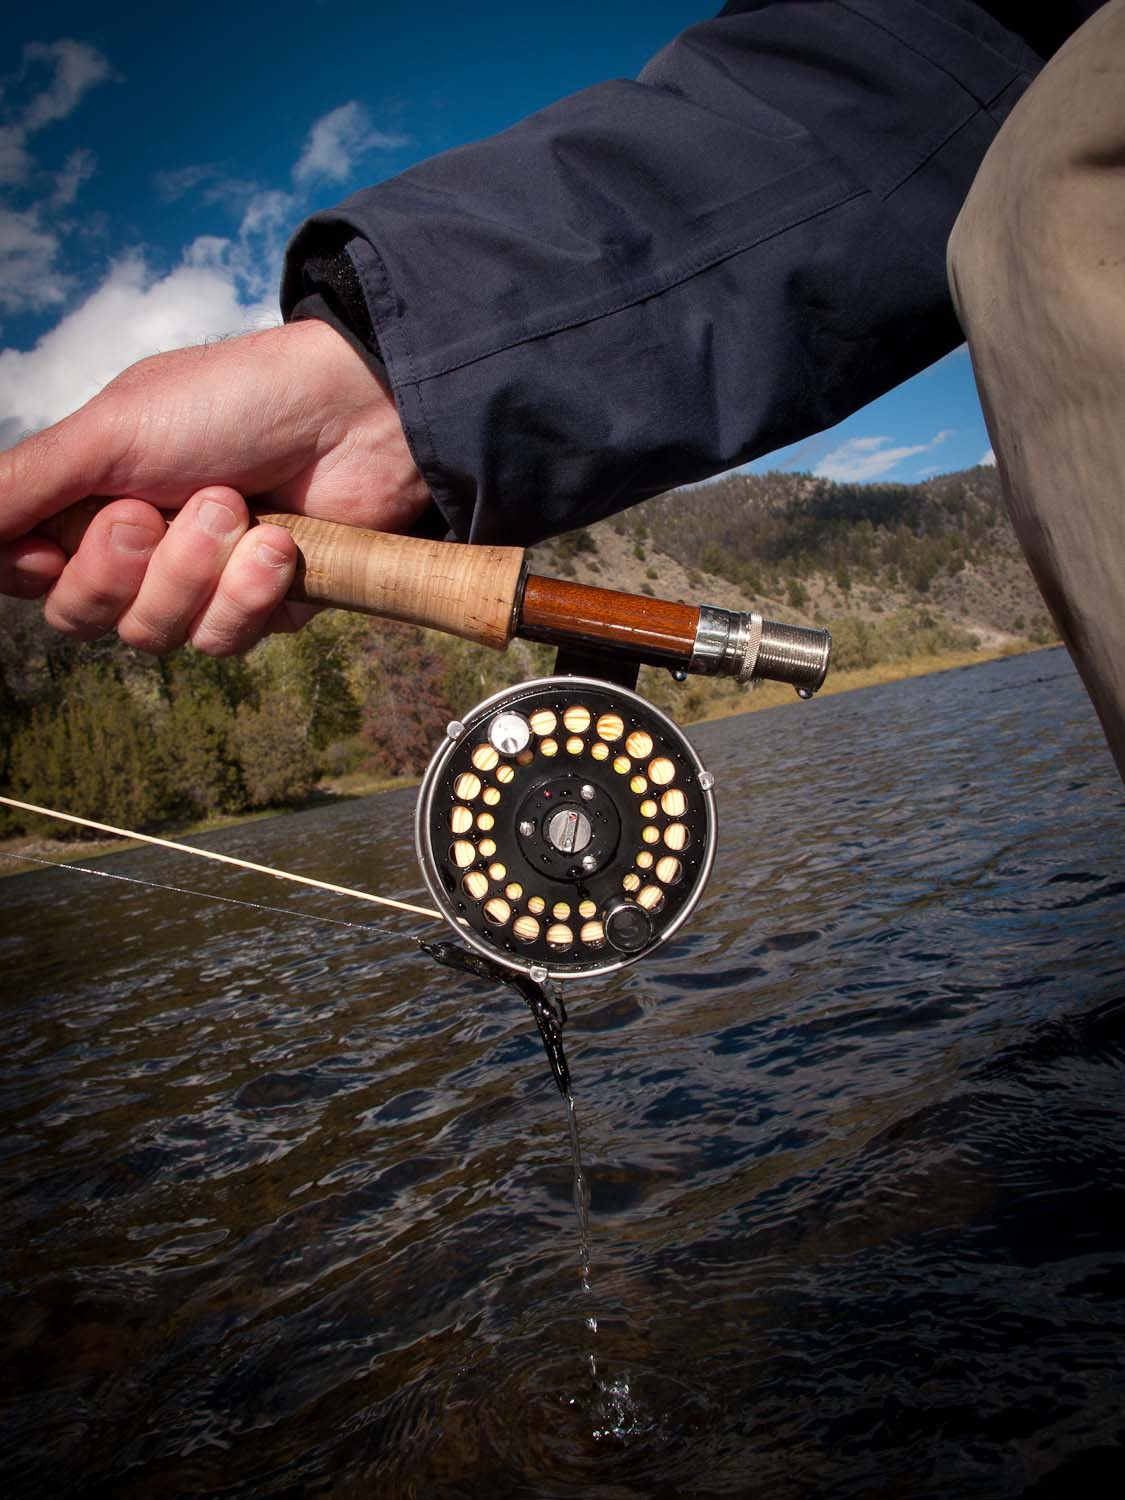 We have all the tackle that you need as part of our service, as well the teaching skill to get you comfortable using all that great gear catching fish!